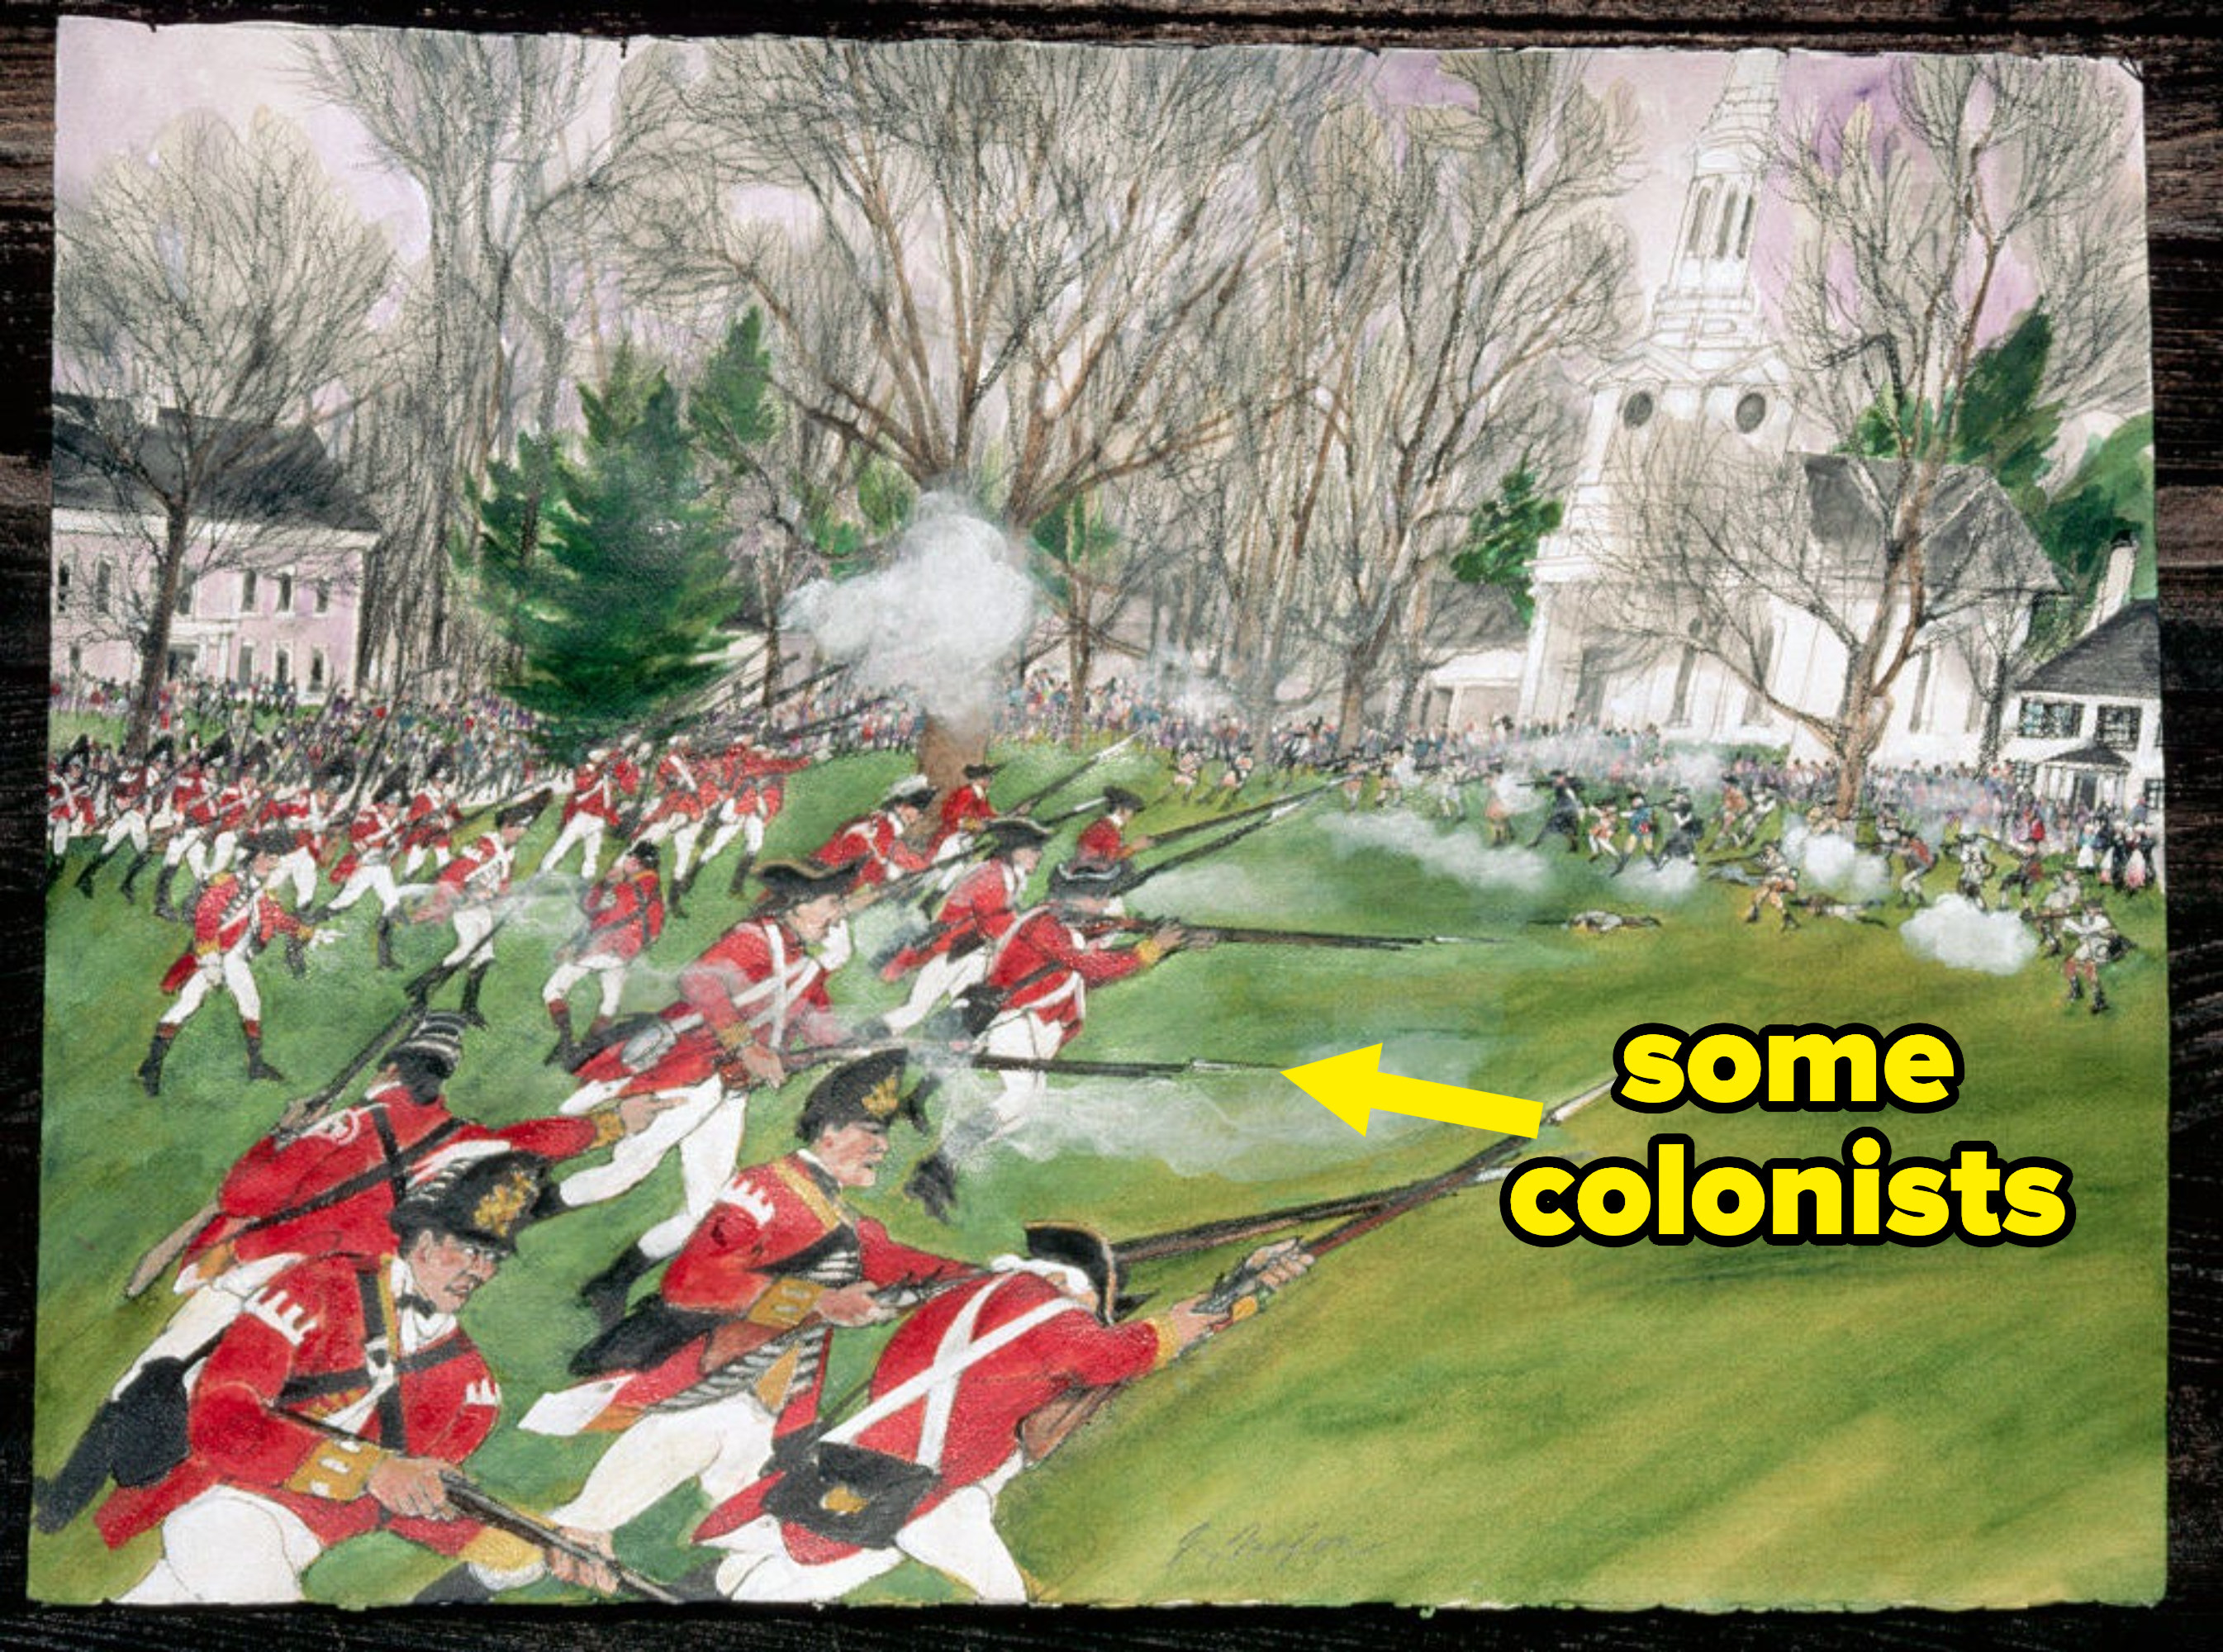 """battle in revolutionary war with redcoats labeled """"some colonists"""""""